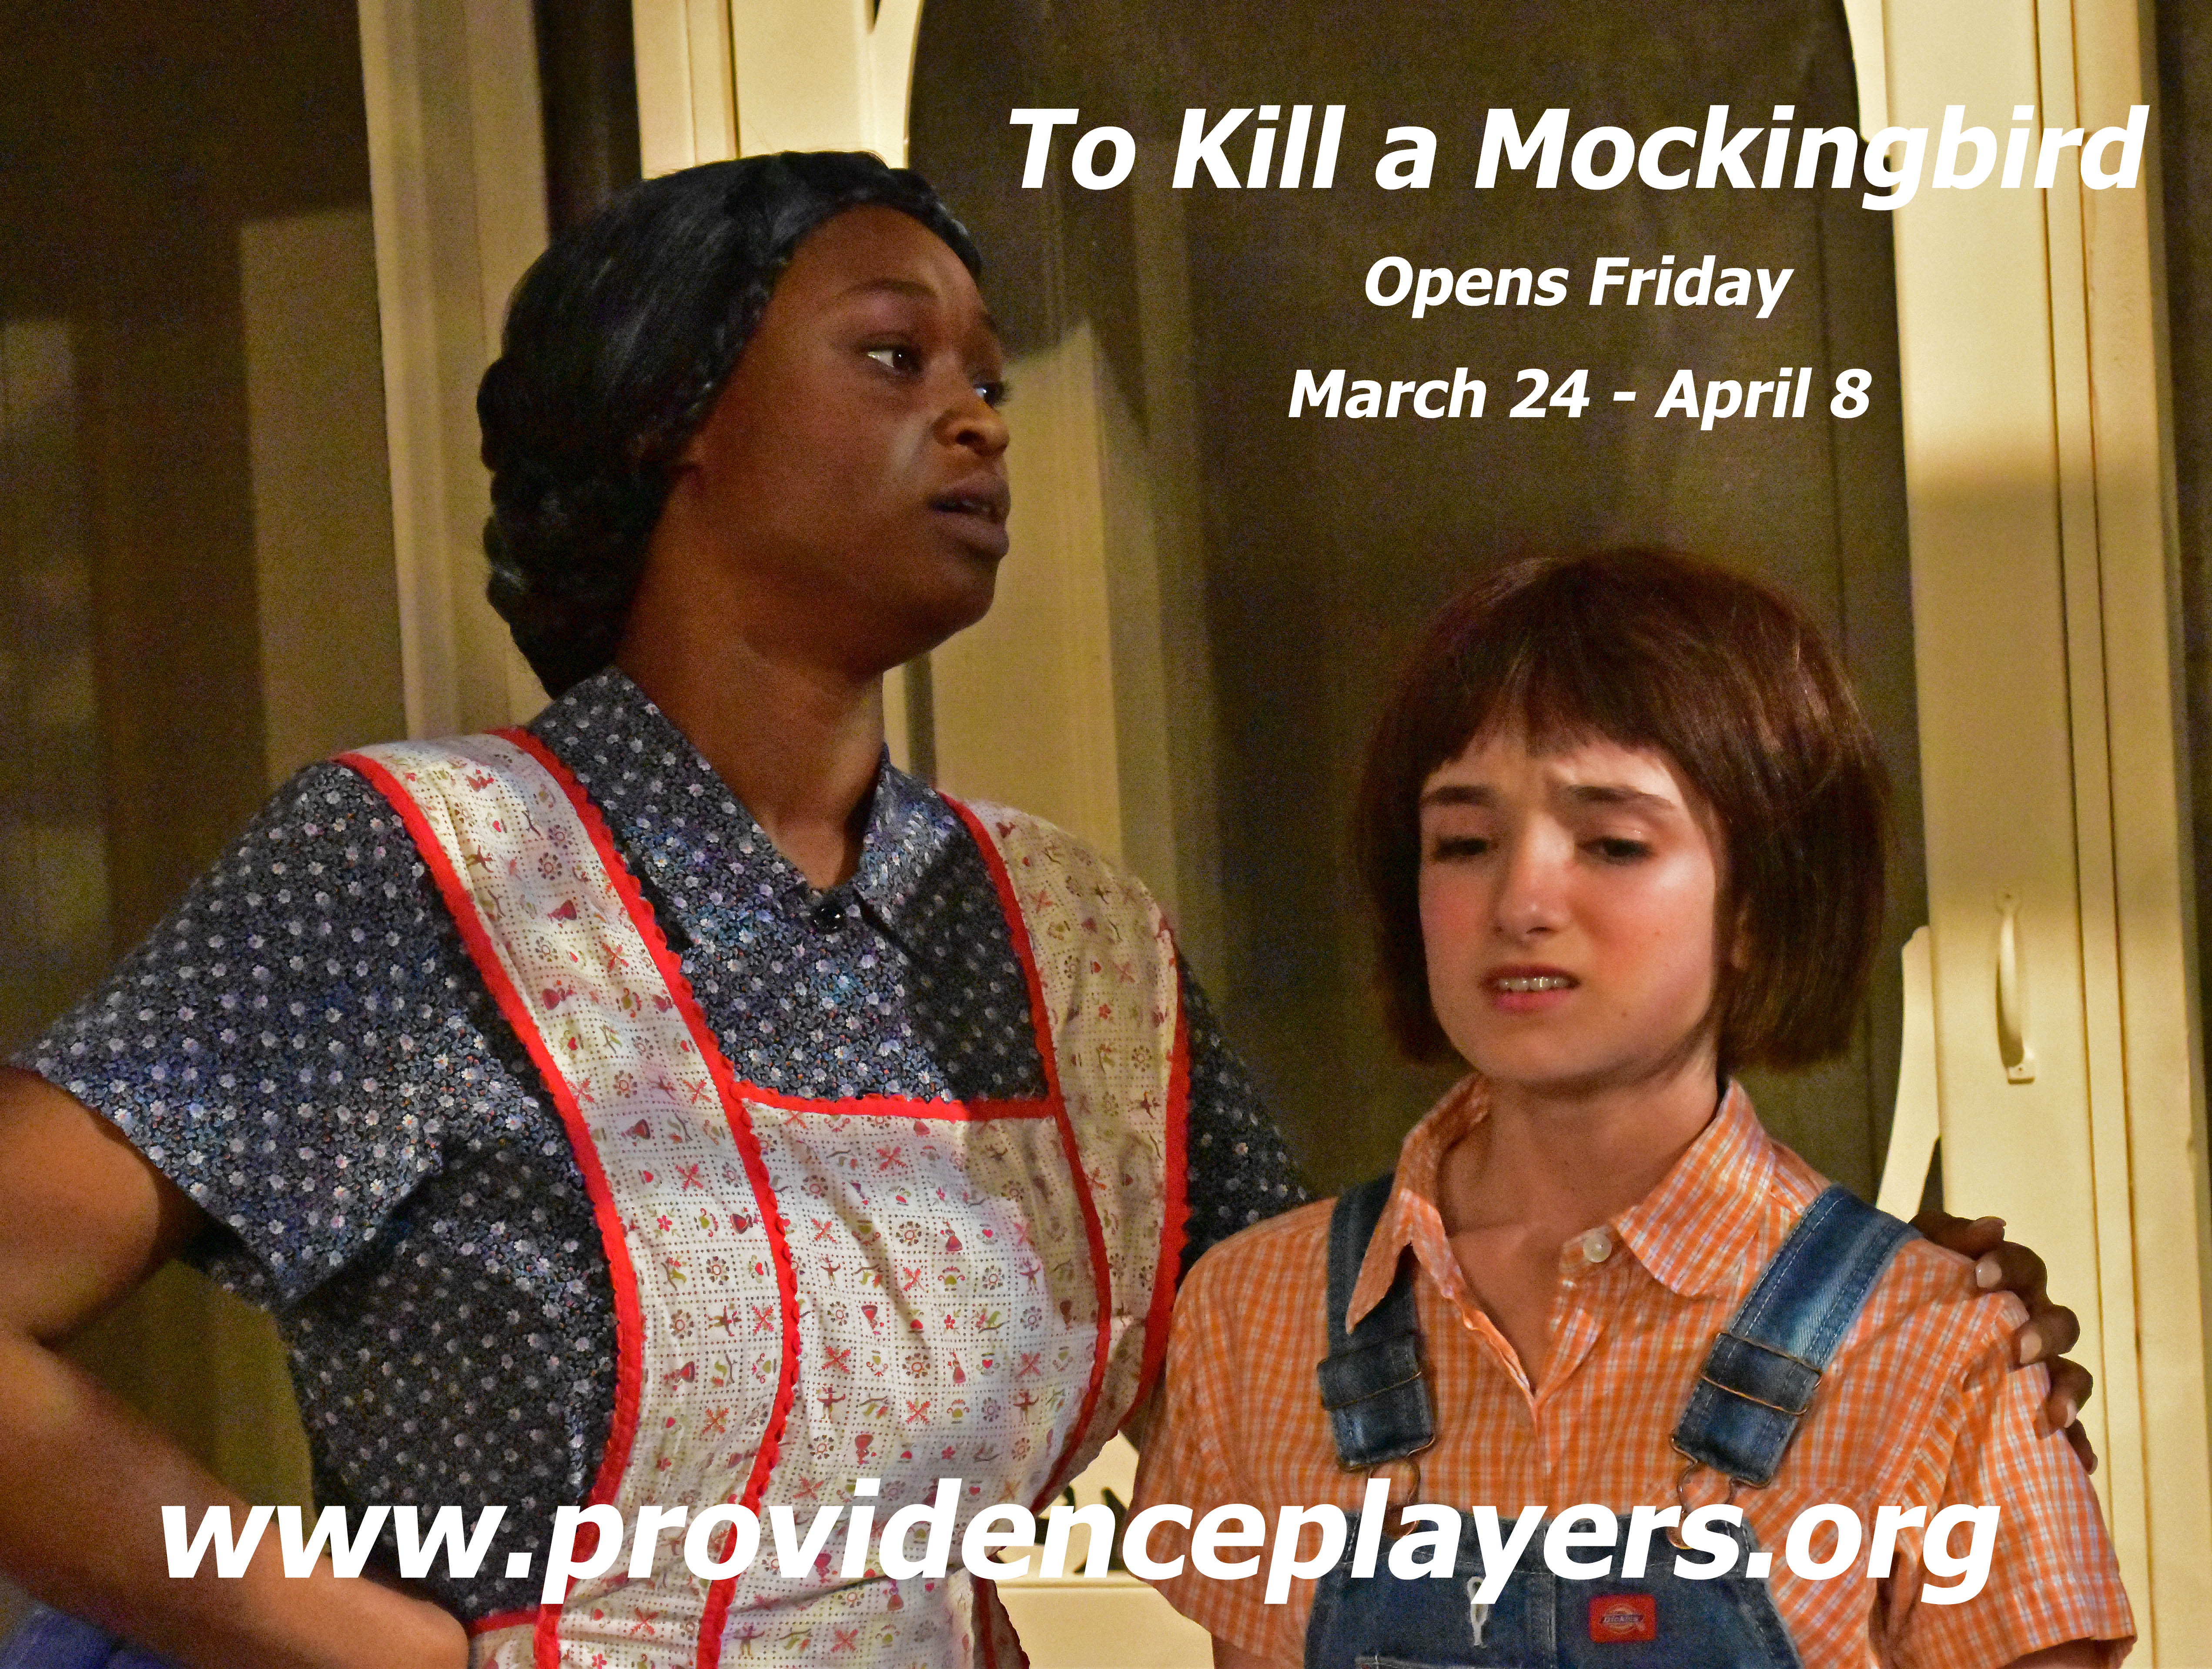 To Kill a Mockingbird Oopens Friday Calpurnia and Scout